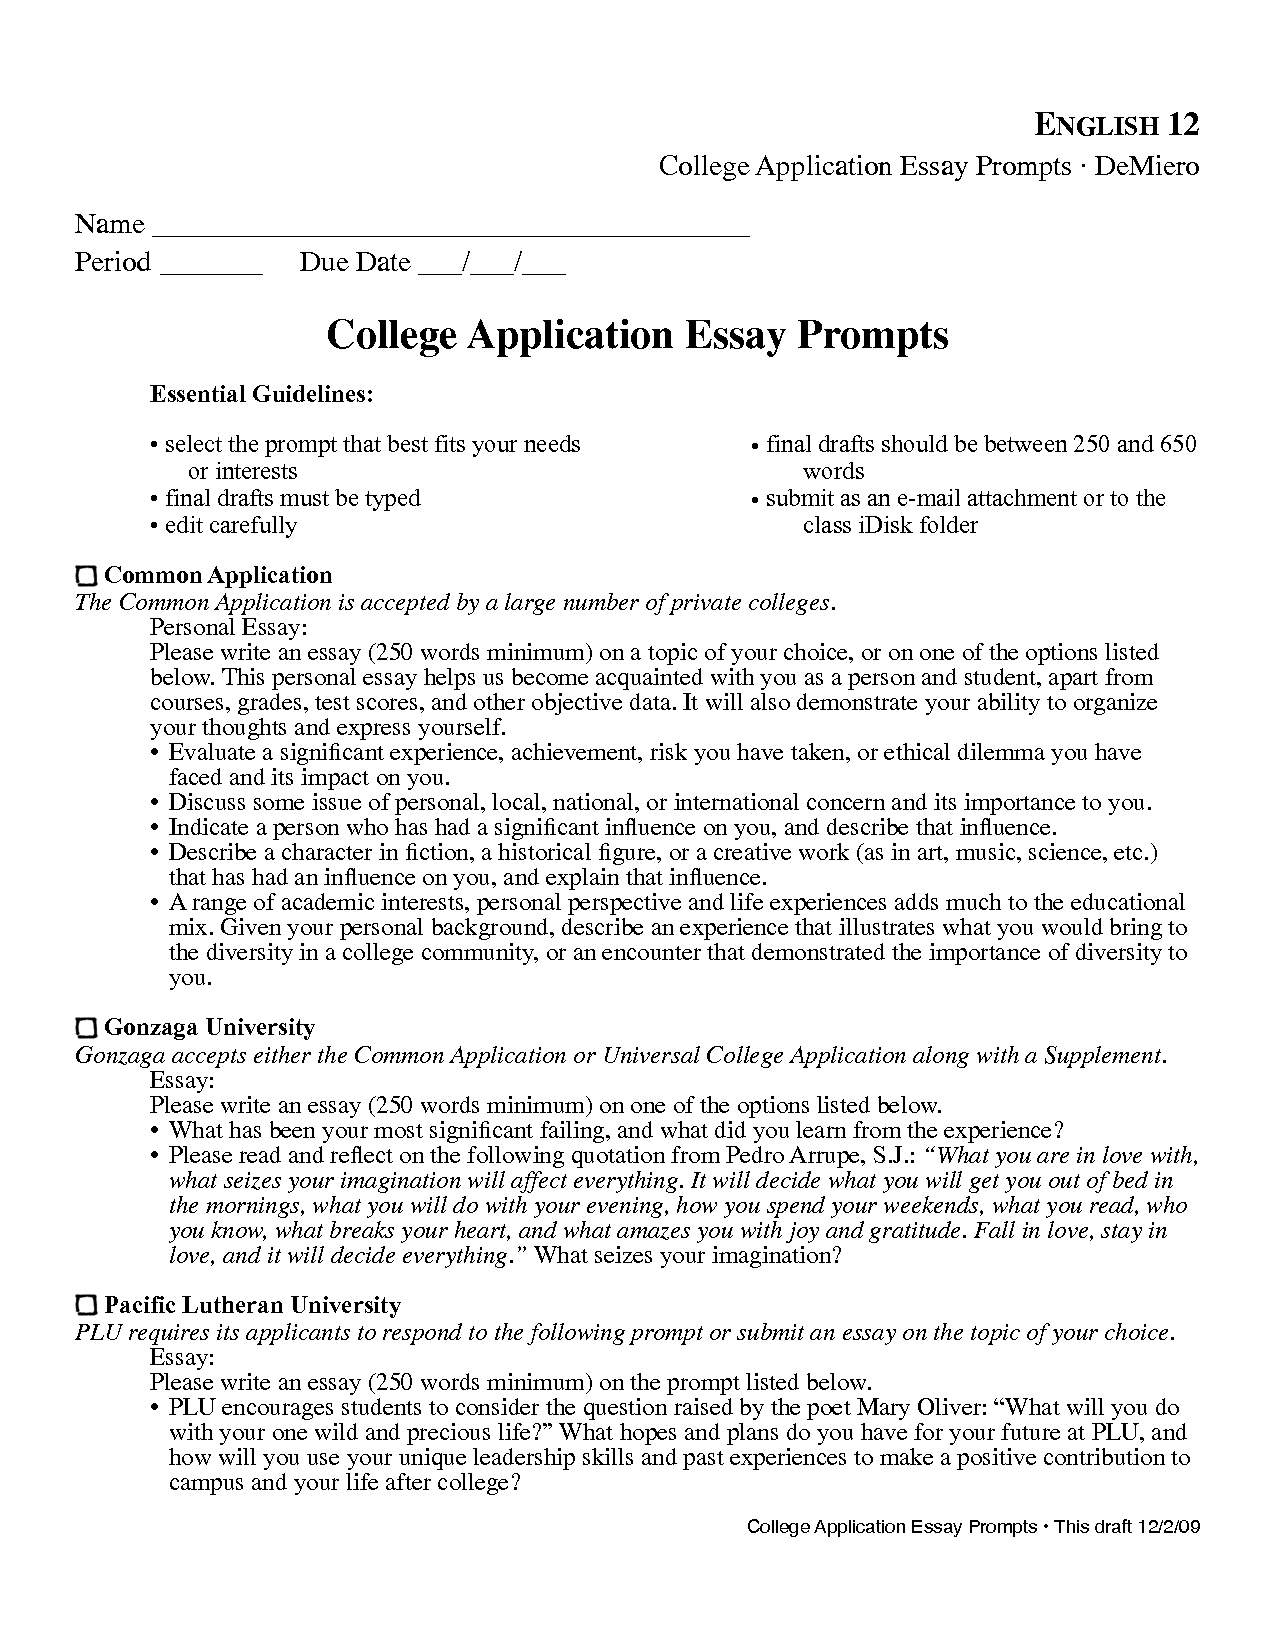 008 Common Application Essay Format Printables Corner App College Prompts Exampl Topicss Impressive Topics Samples Topic 1 Ideas 2017 Full